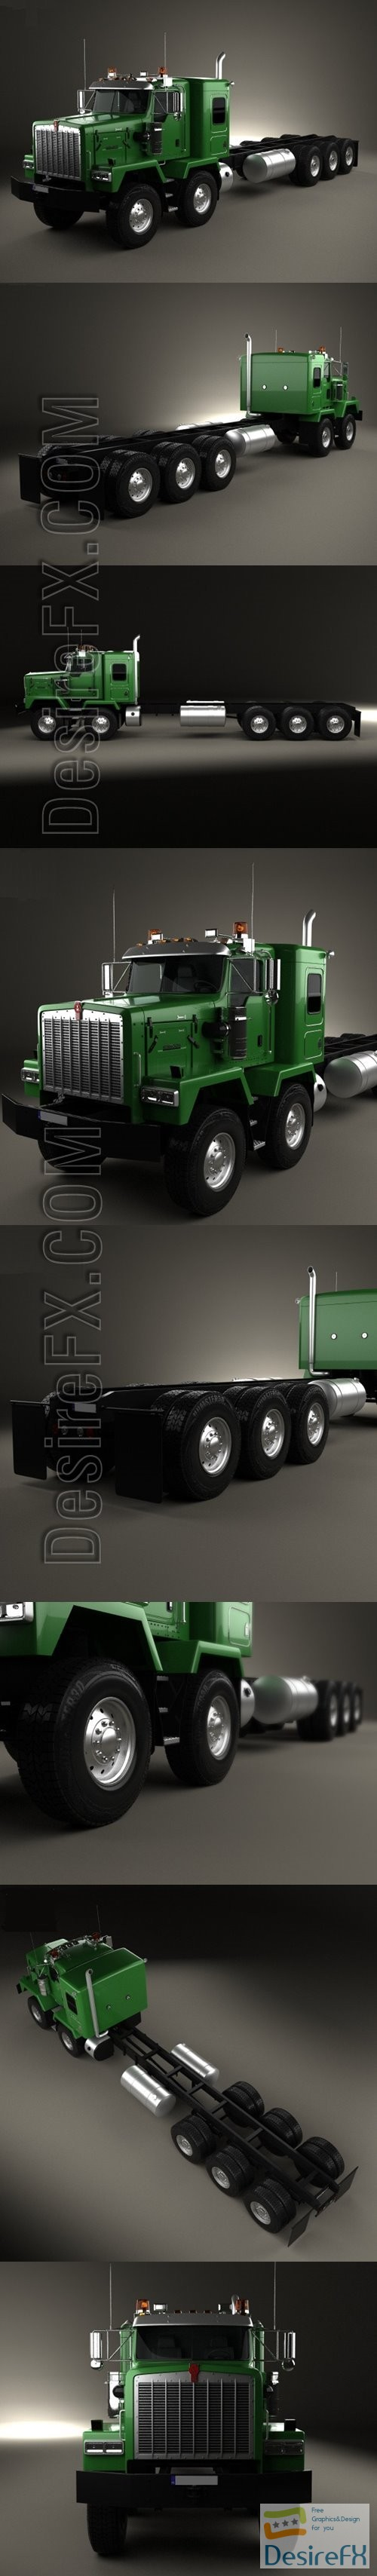 3d-models - Kenworth C500 Chassis Truck 5axle 2001 3D Model